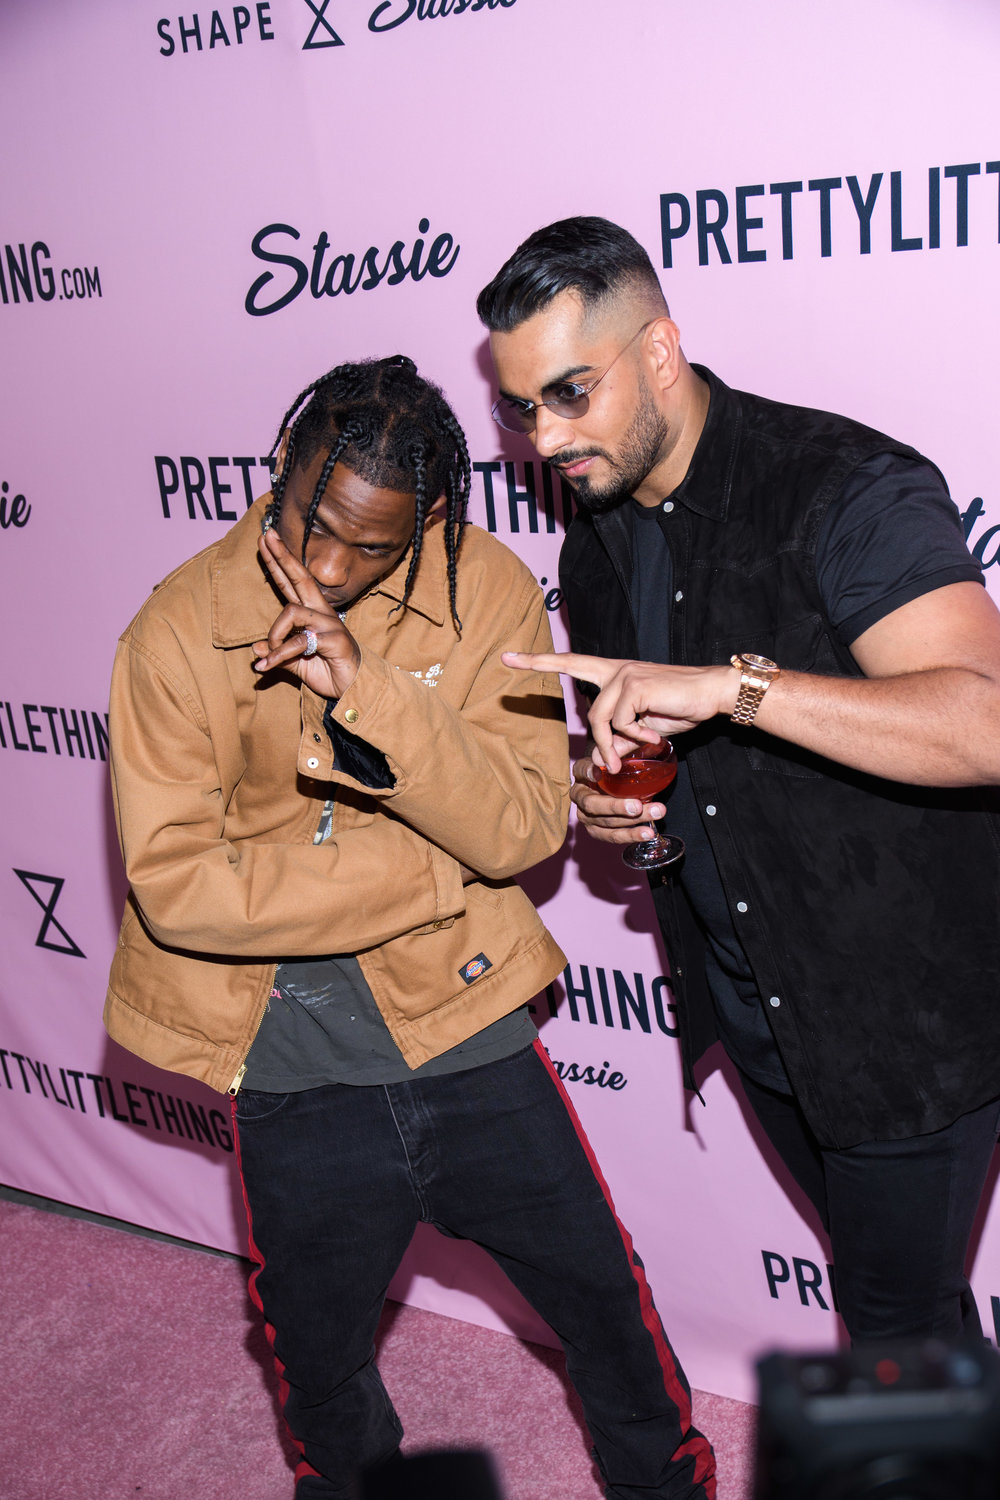 PrettyLittleThing New PLT Shape Collection with Stassie Celebrity Launch Party Travis Scott and Umar Kamani.jpg